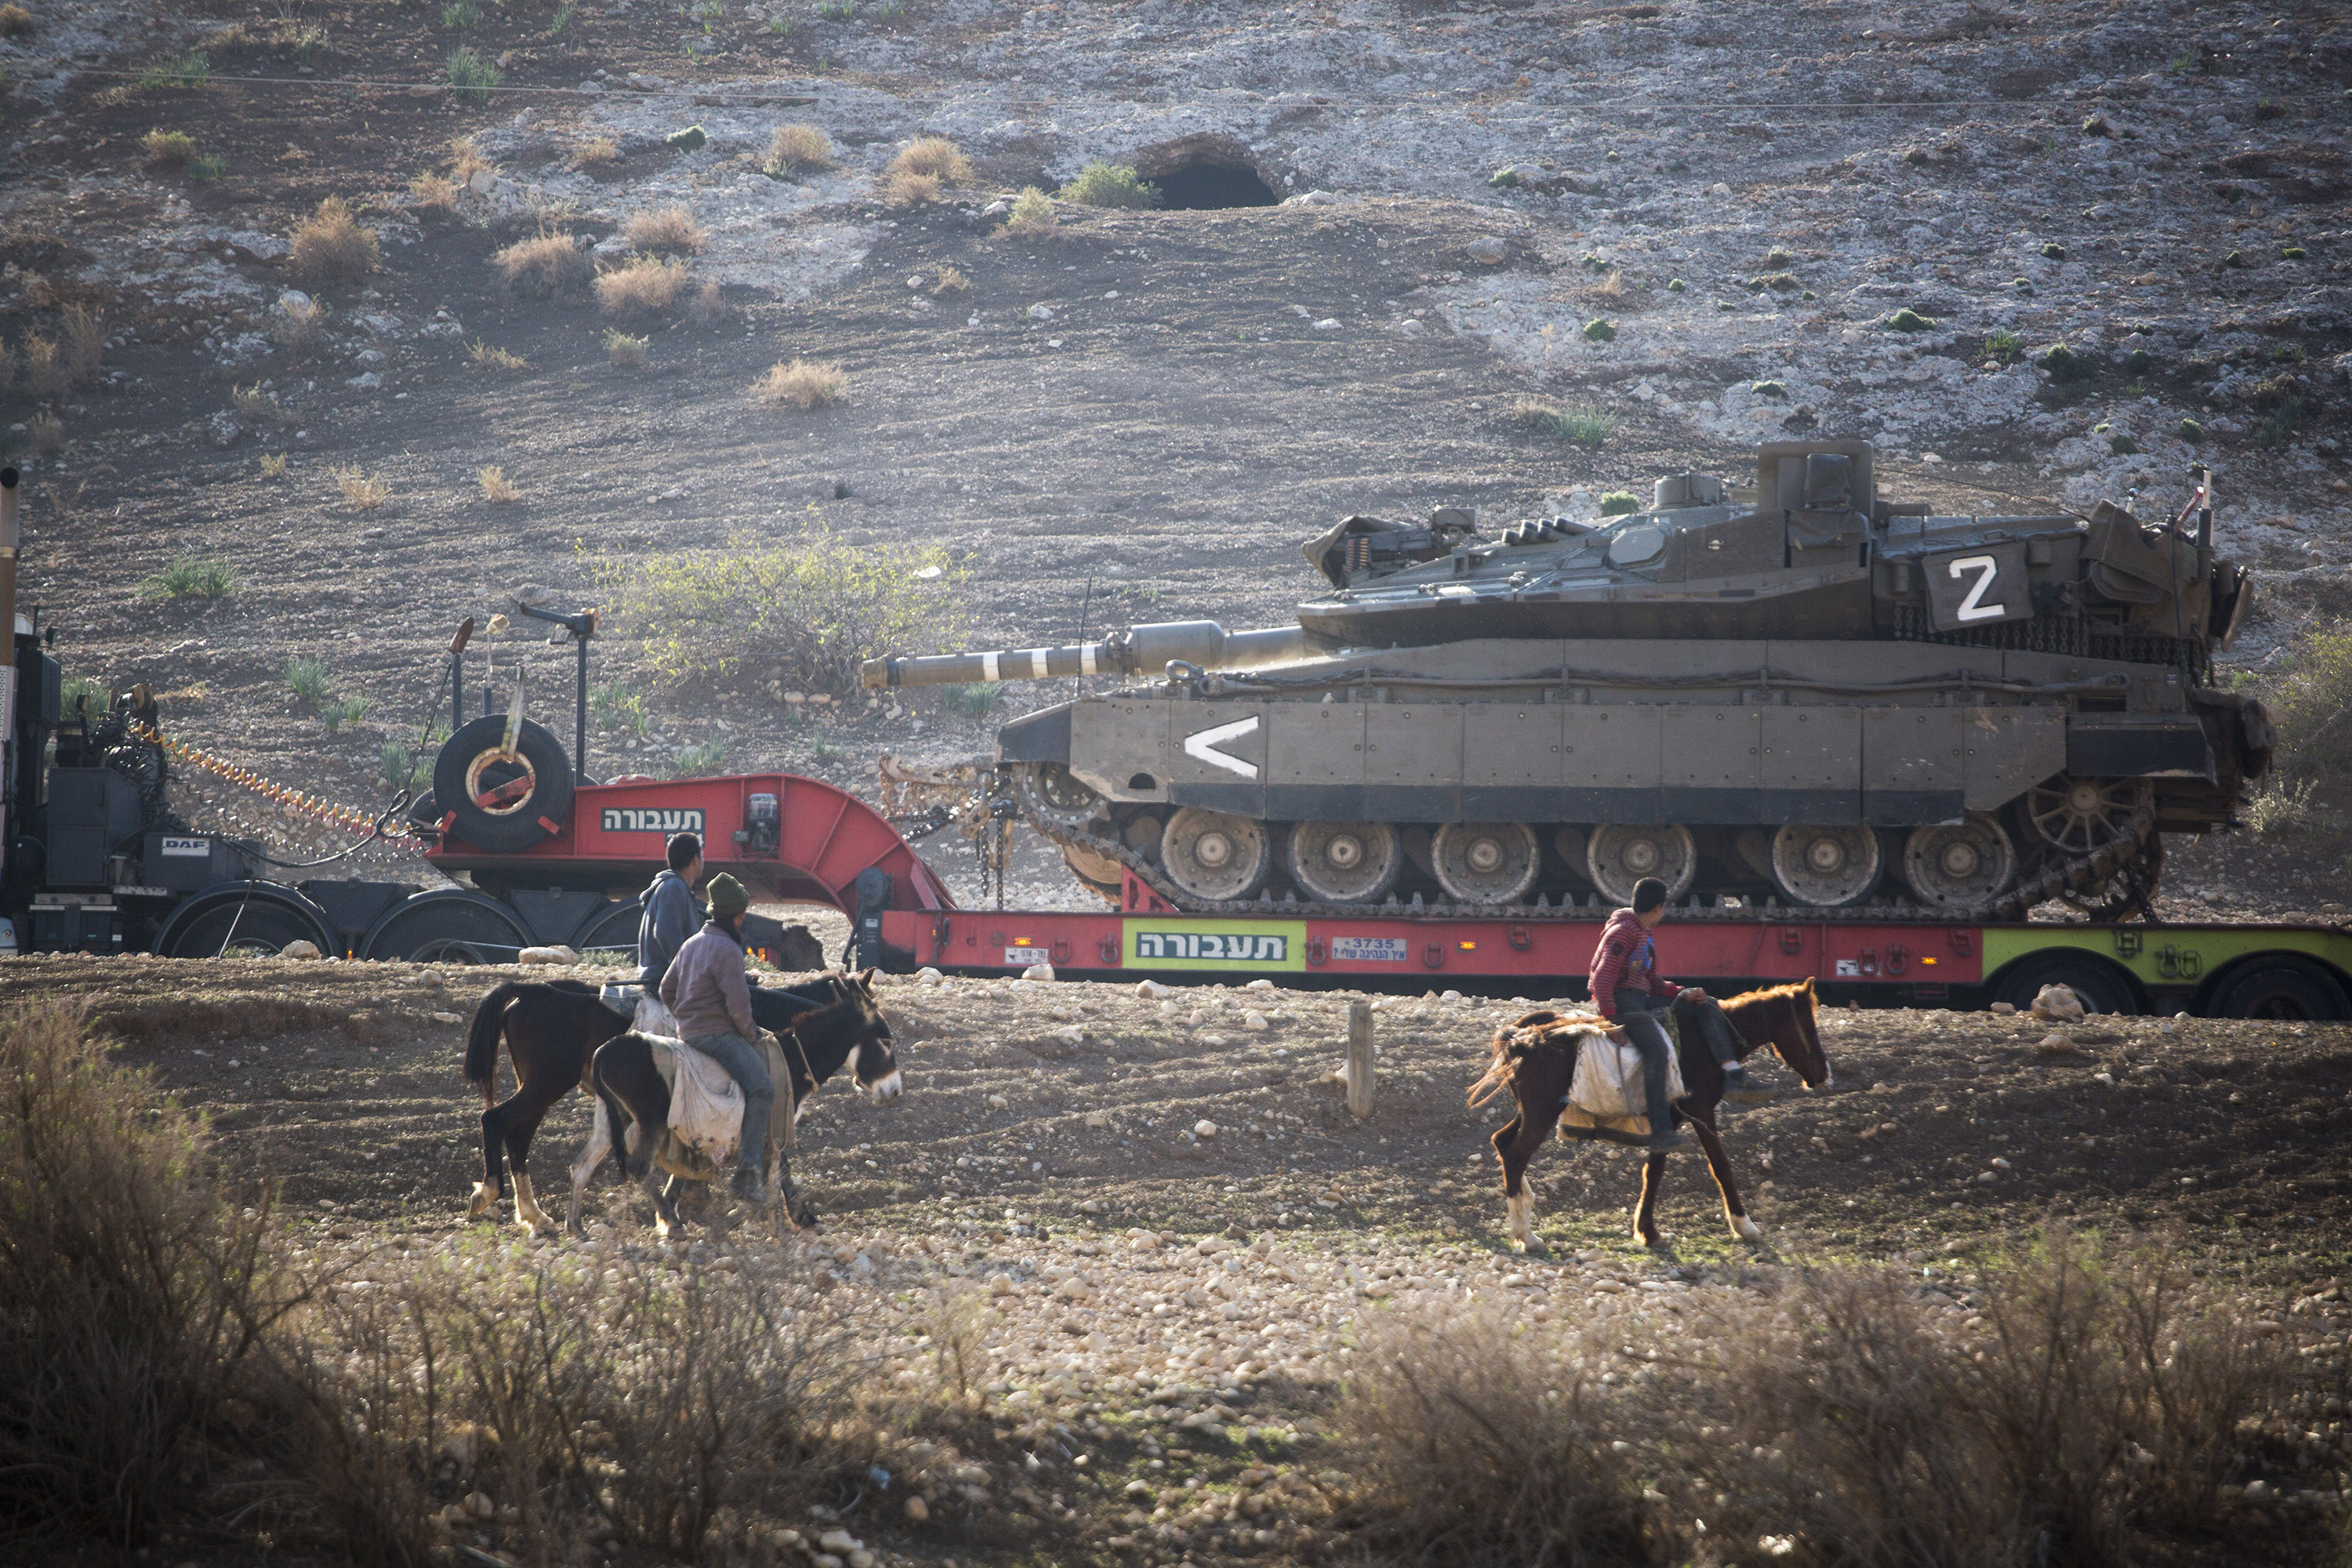 Palestinian youth look at an Israeli transporter, carrying an army tank, during an Israeli military training in the northern Jordan valley in the occupied West Bank. (Photo: Activestills / Keren Manor)